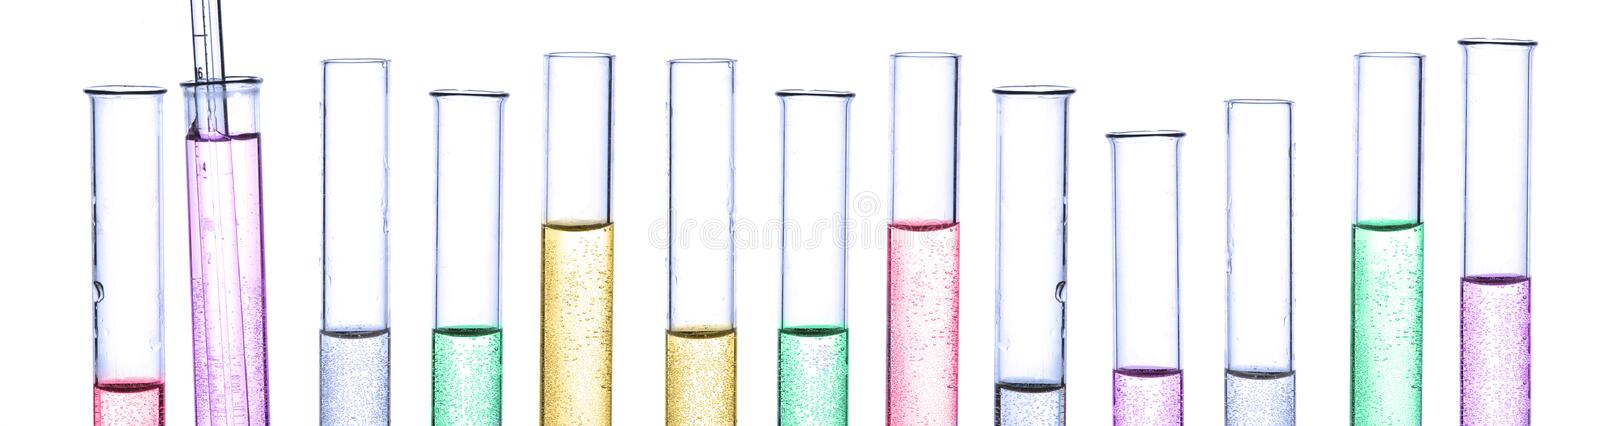 Panorama chemistry tube stock images